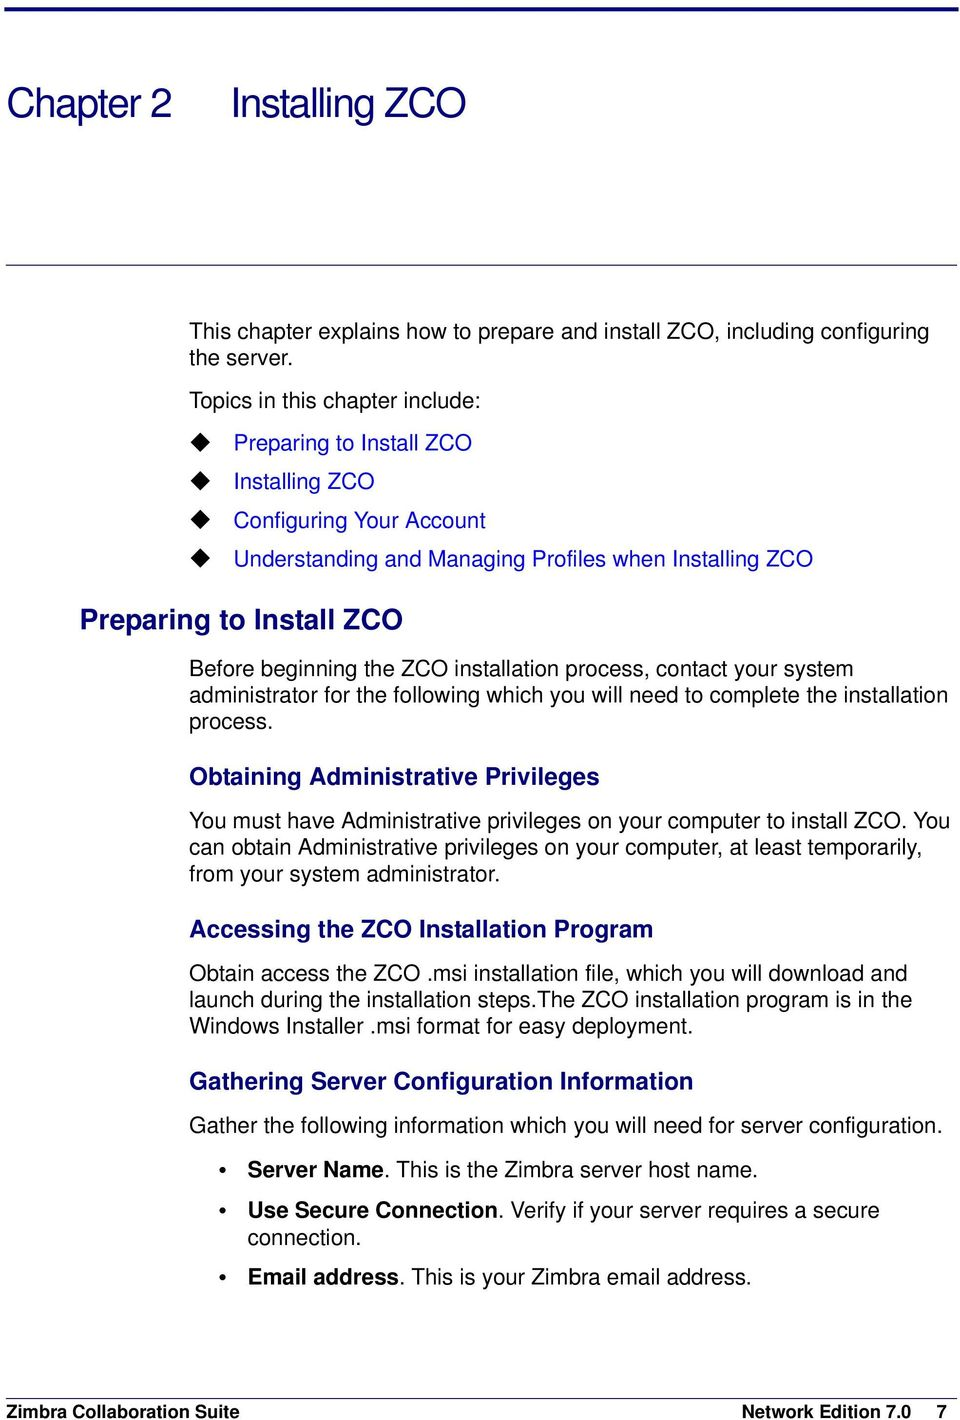 ZCO installation process, contact your system administrator for the following which you will need to complete the installation process.